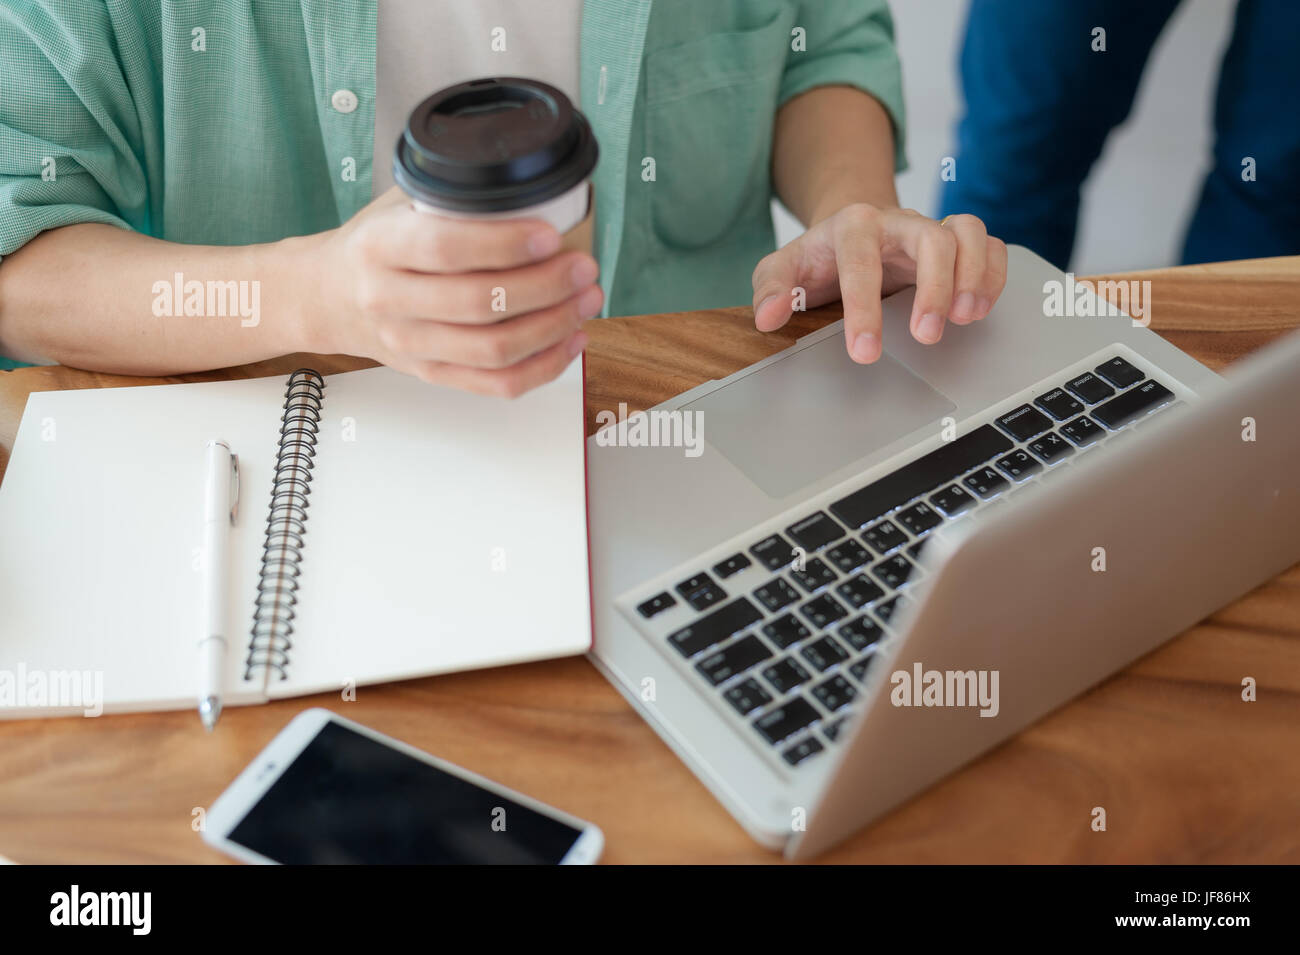 Asian hipster male with casual cloths using laptop computer touchpad while drinking coffee in cafe on workday. Freelance - Stock Image